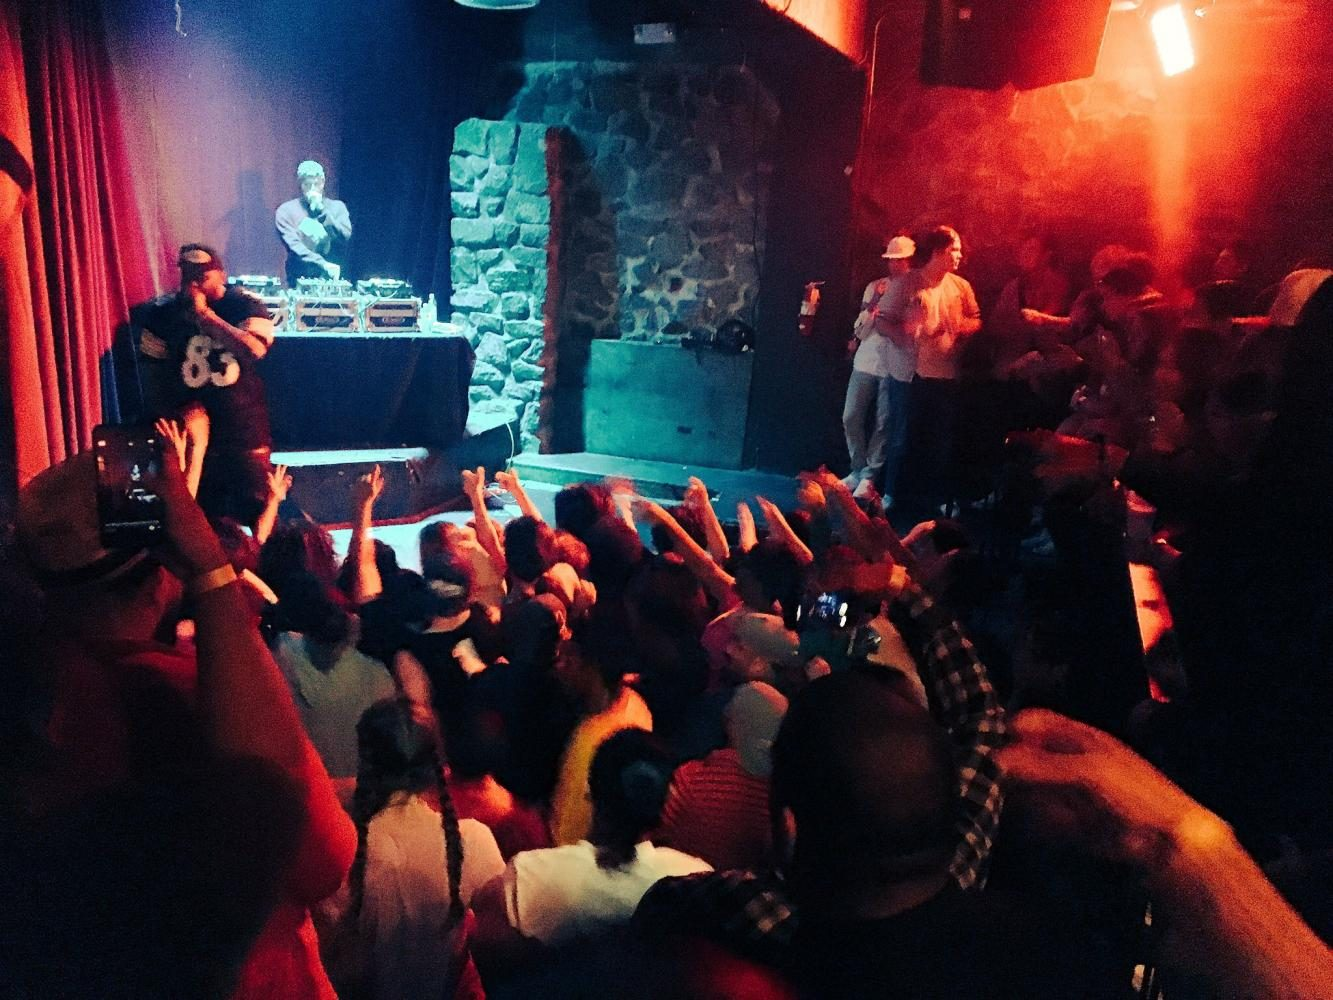 Maxo Kream excites in short setlist at The Lowbrow